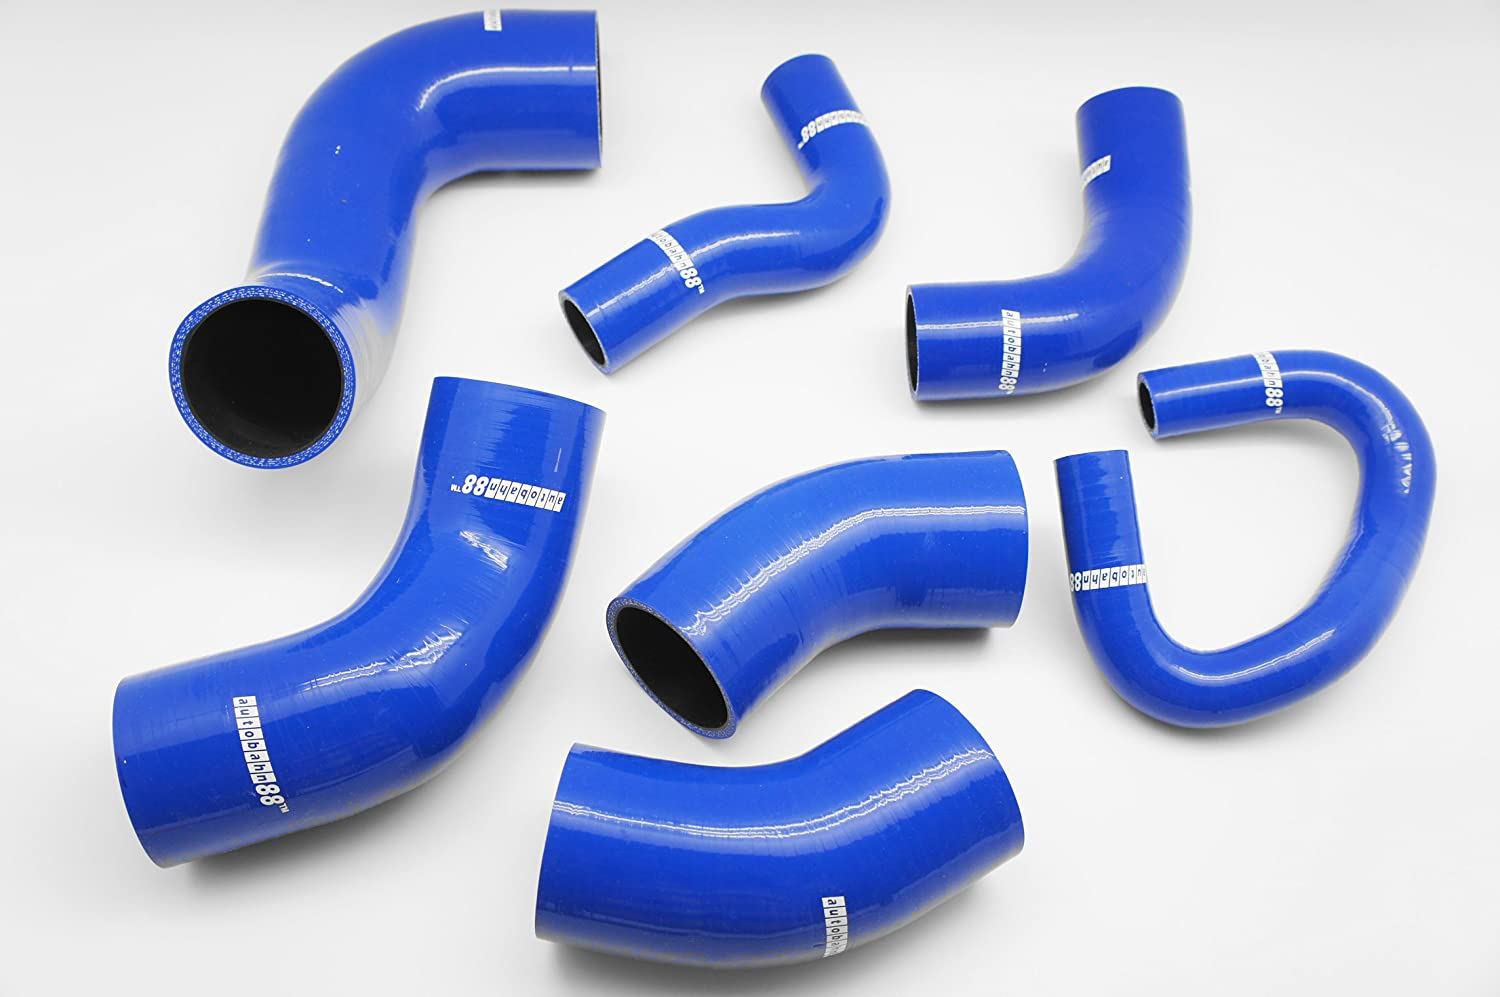 Red -with Clamp Set Autobahn88 Air Intake Silicone Hose Kit fits for 1992-1996 Mitsubishi Lancer Evolution EVO 1 2 3 CD9A CE9A 4G63